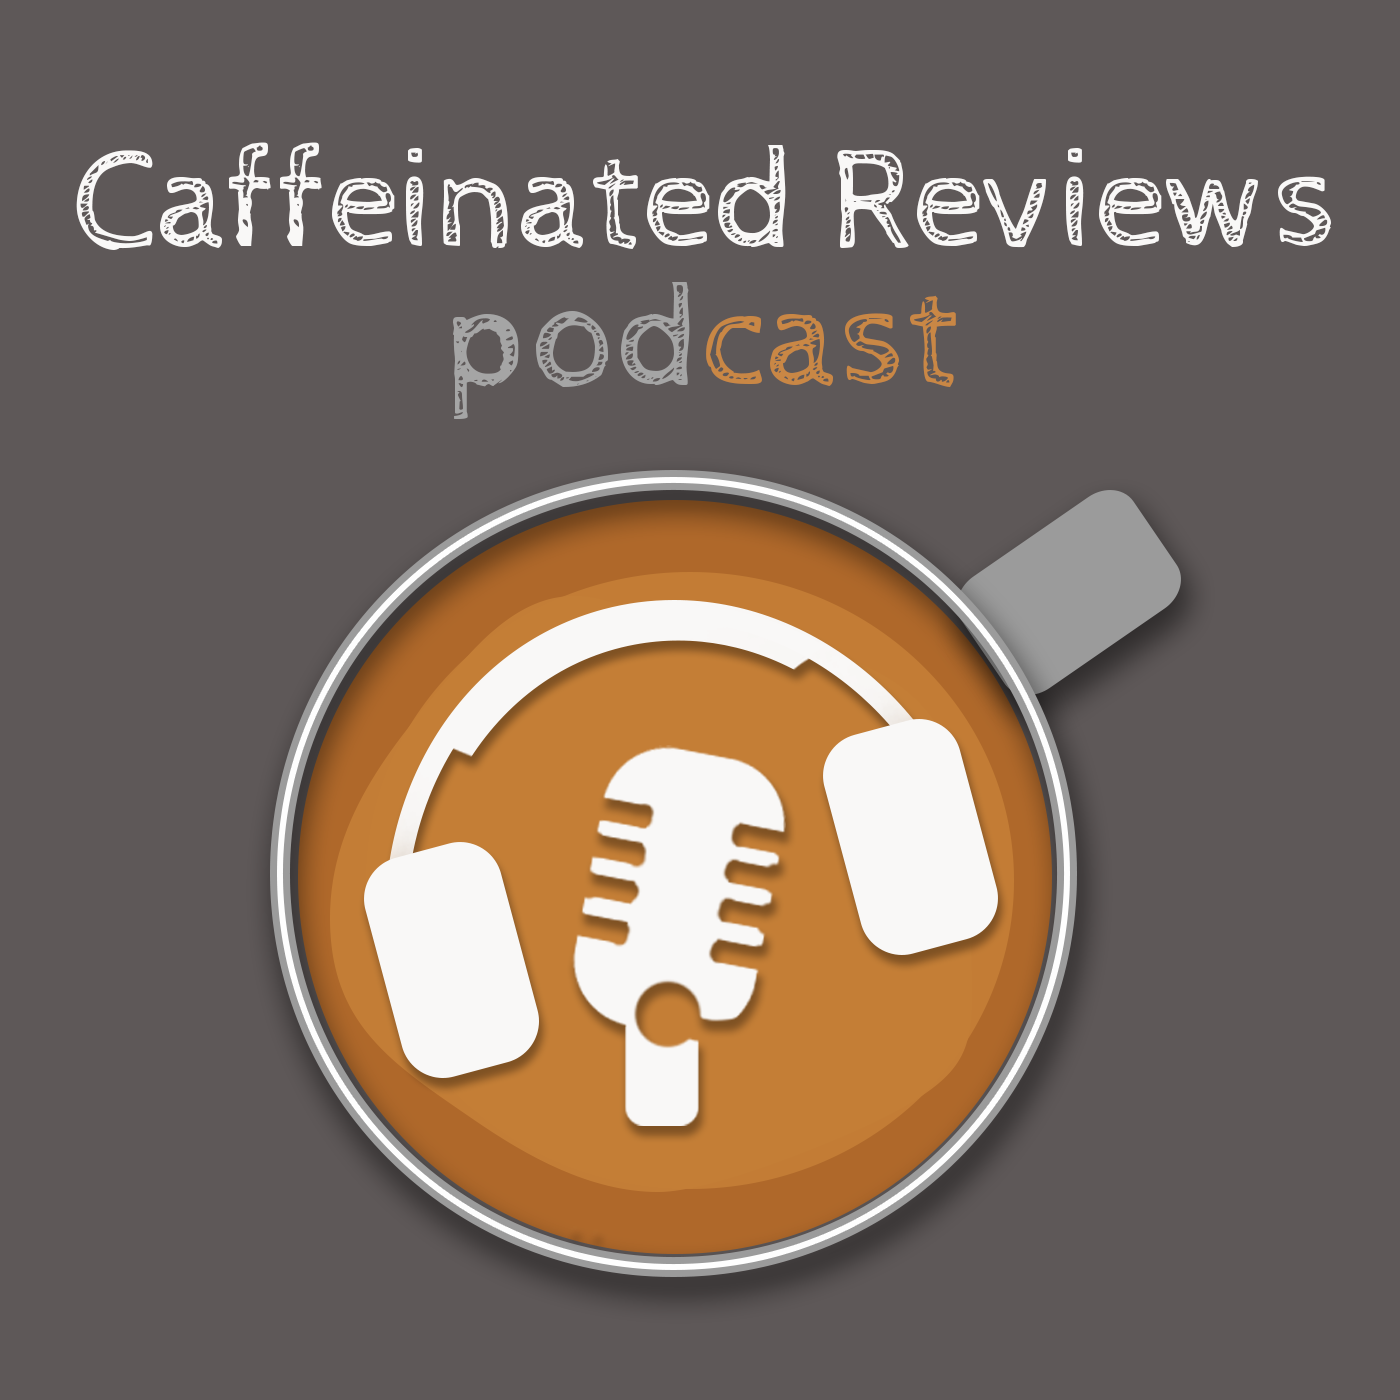 Caffeinated Reviews Podcast